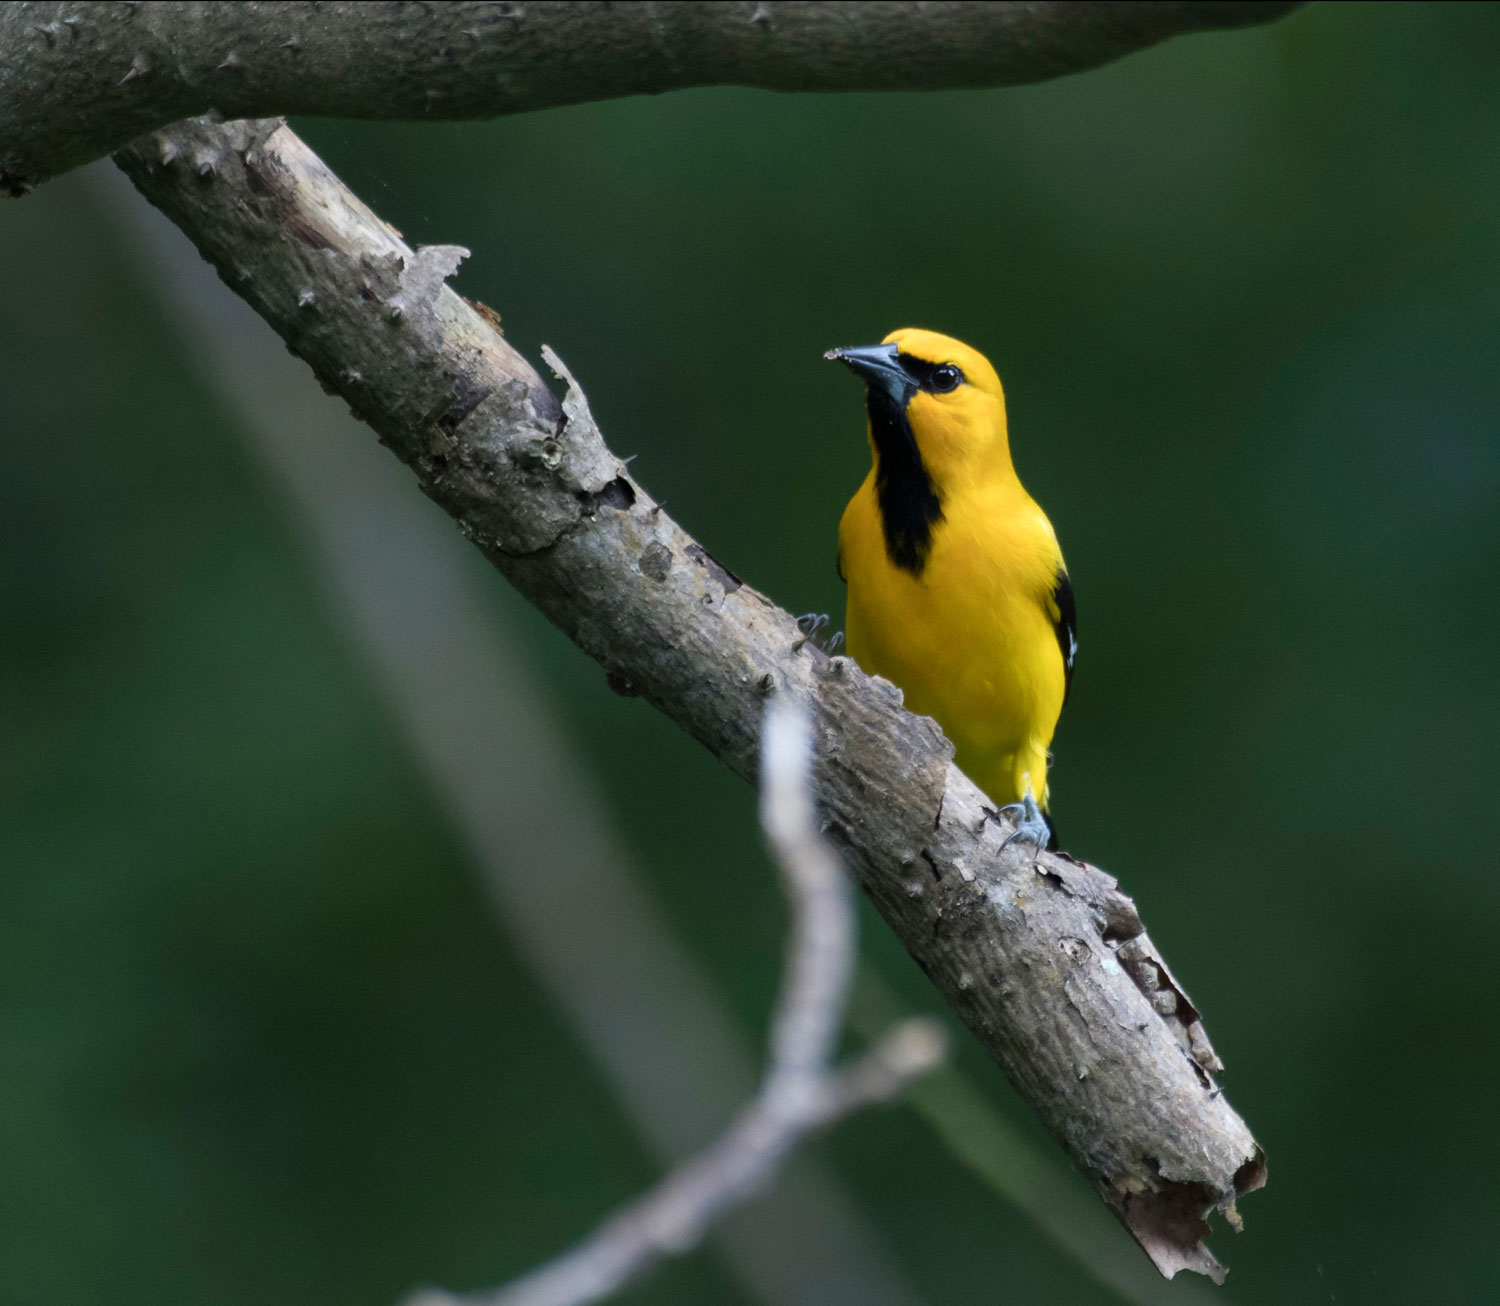 The yellow oriole (Icterus nigrogularis) is a common bird species in T&T gardens — and maybe one for your Bioblitz checklist. Photo by Devan Mulchansingh, courtesy T&T BioBlitz